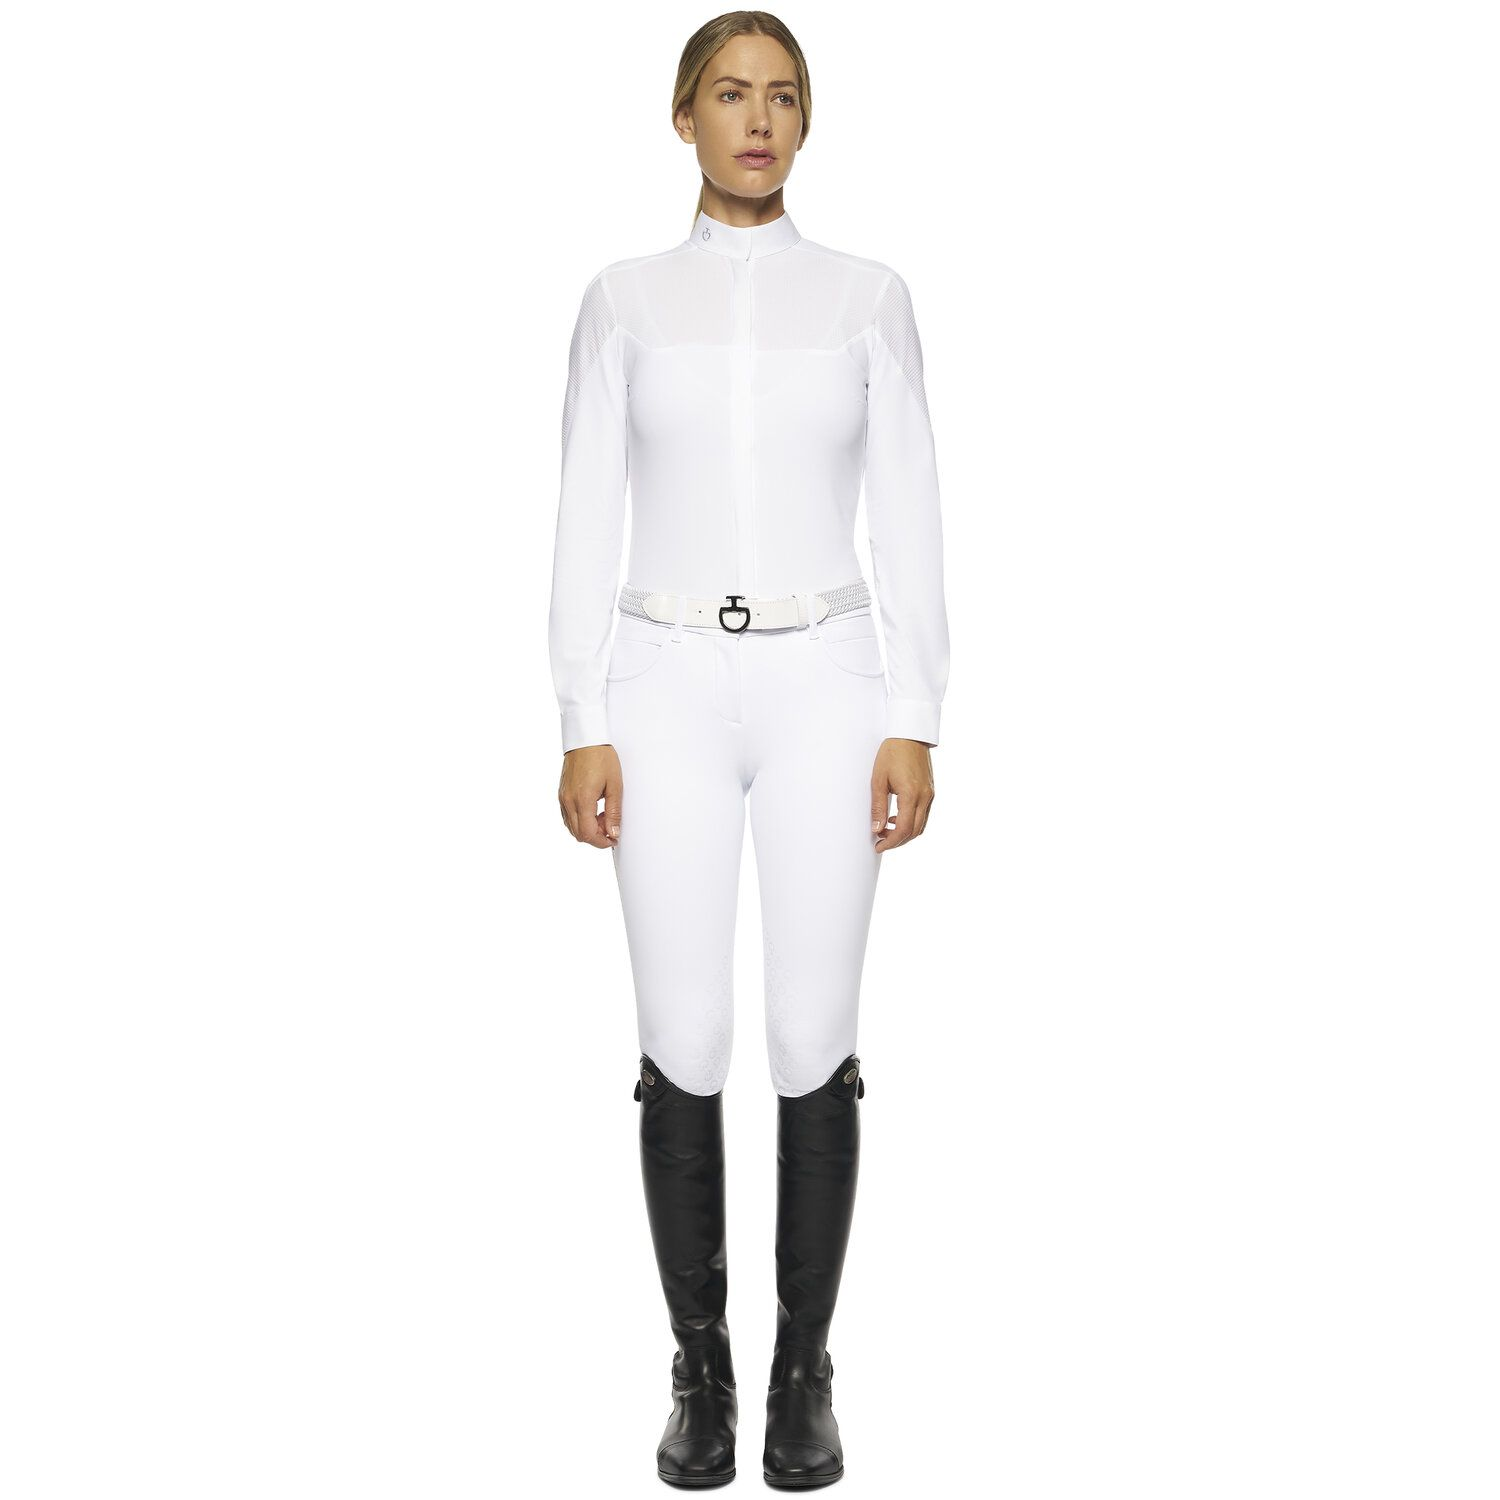 Women's long-sleeved competition shirt with inserts.